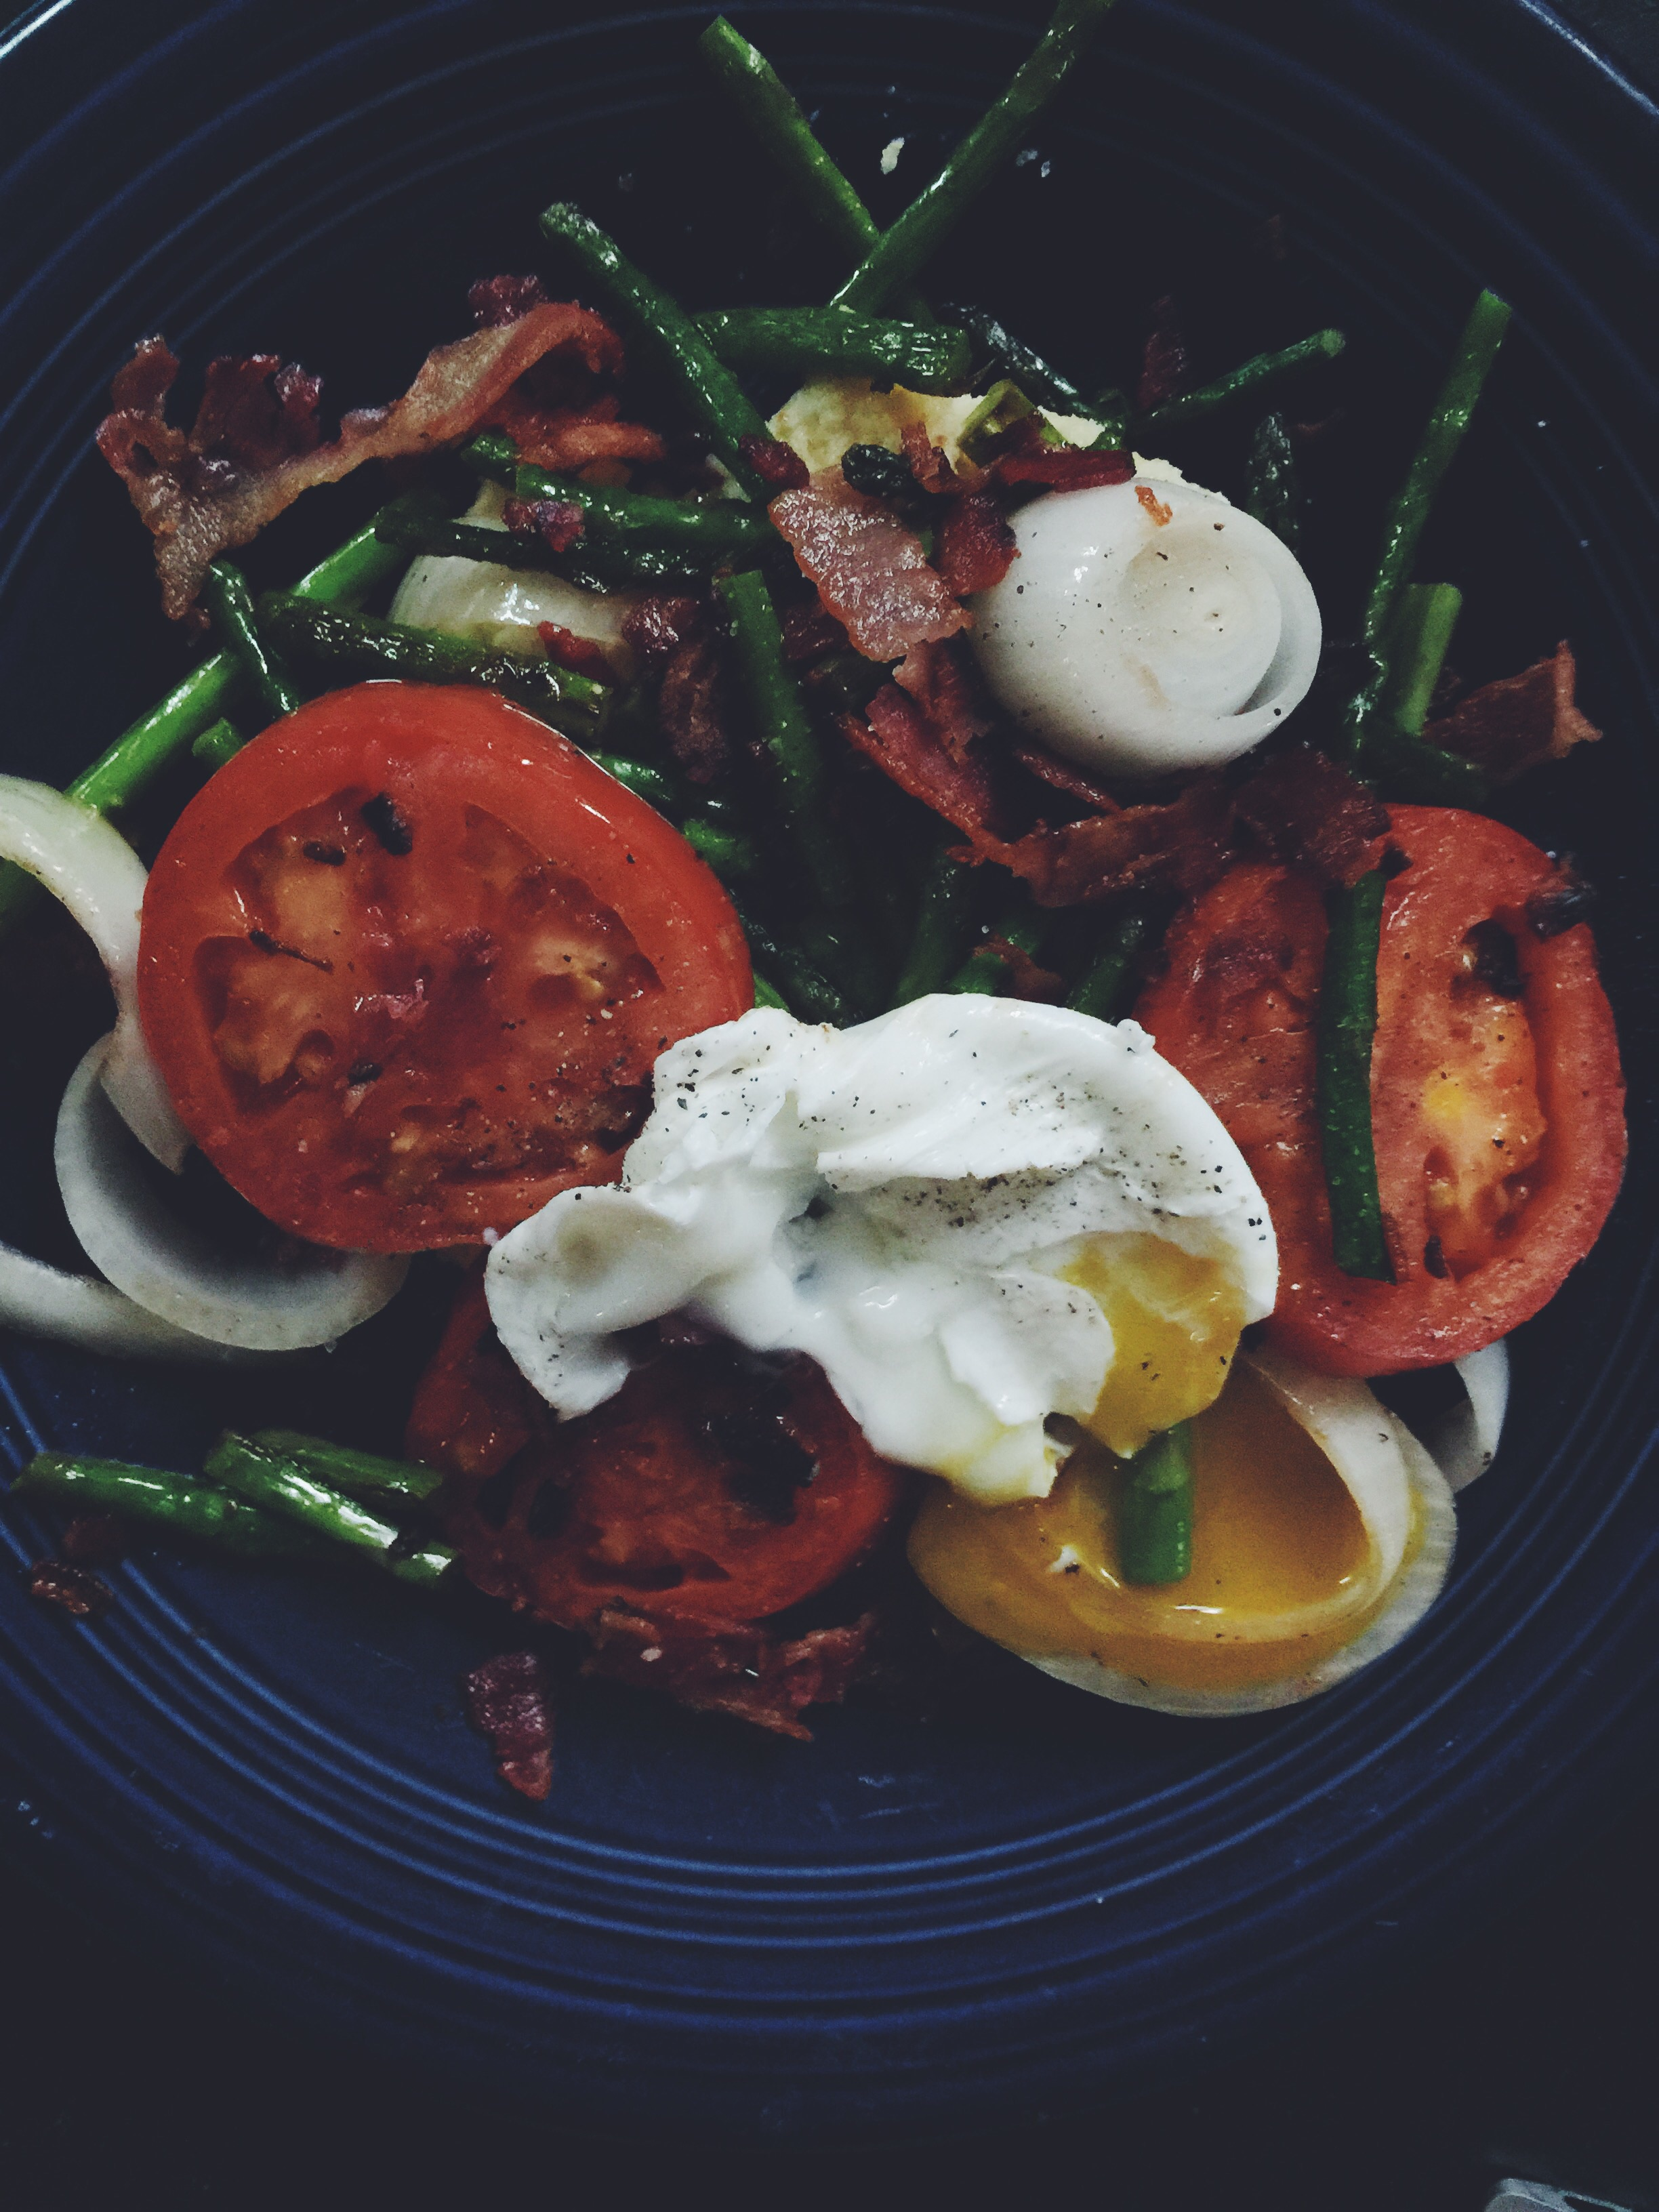 polenta with fried veggies and runny egg